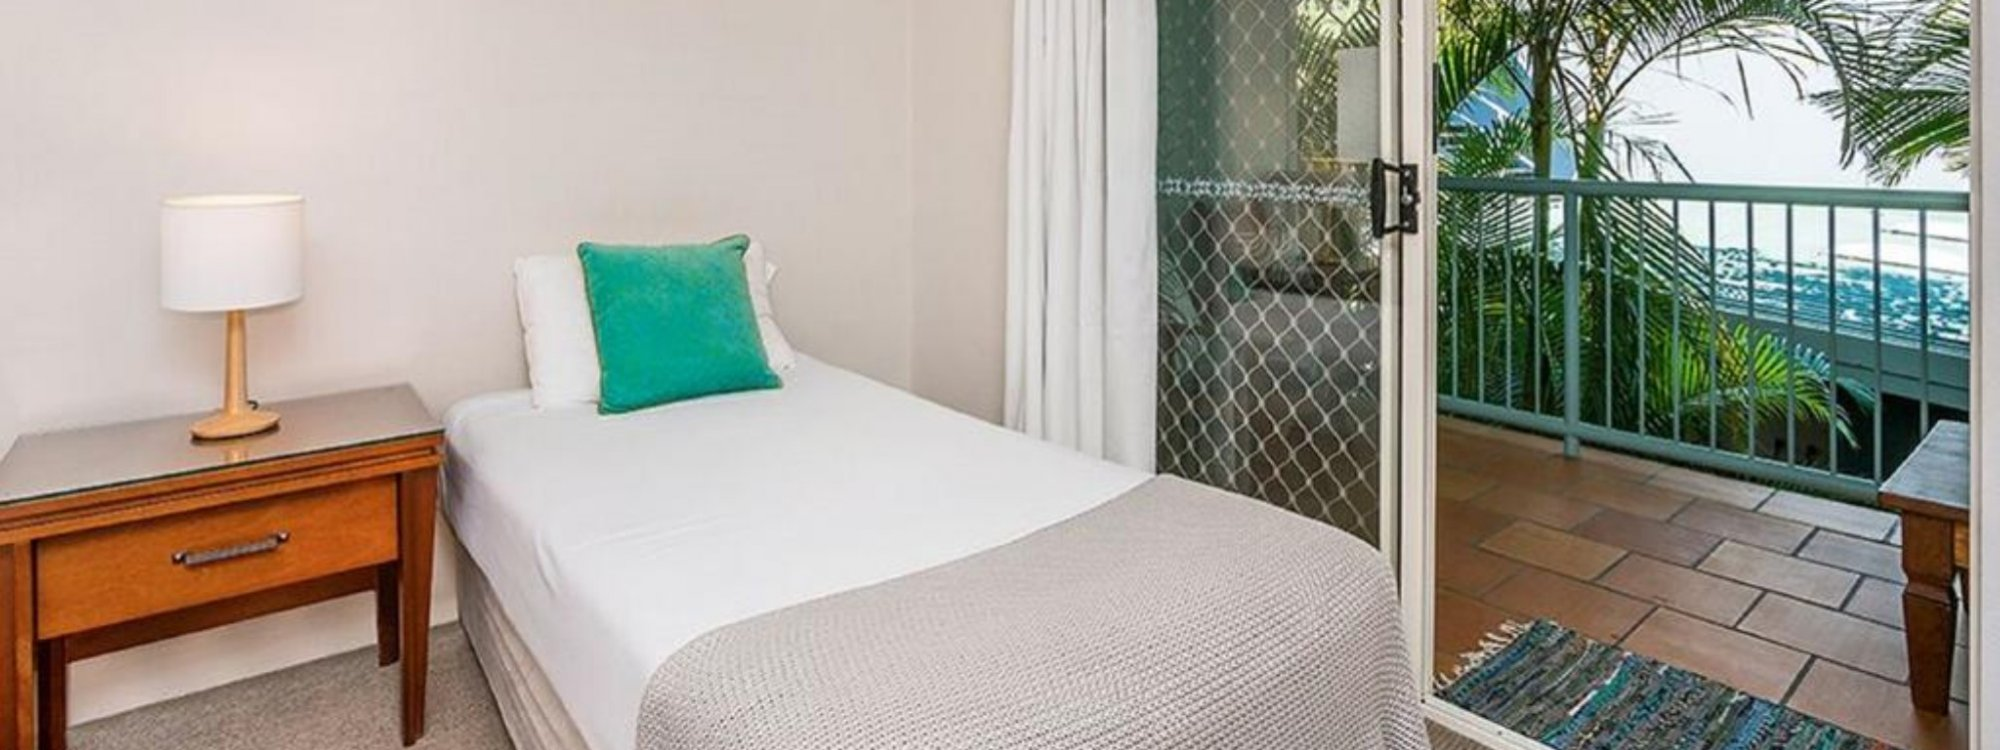 Heathers Hideaway - Byron Bay - Bedroom 2 b